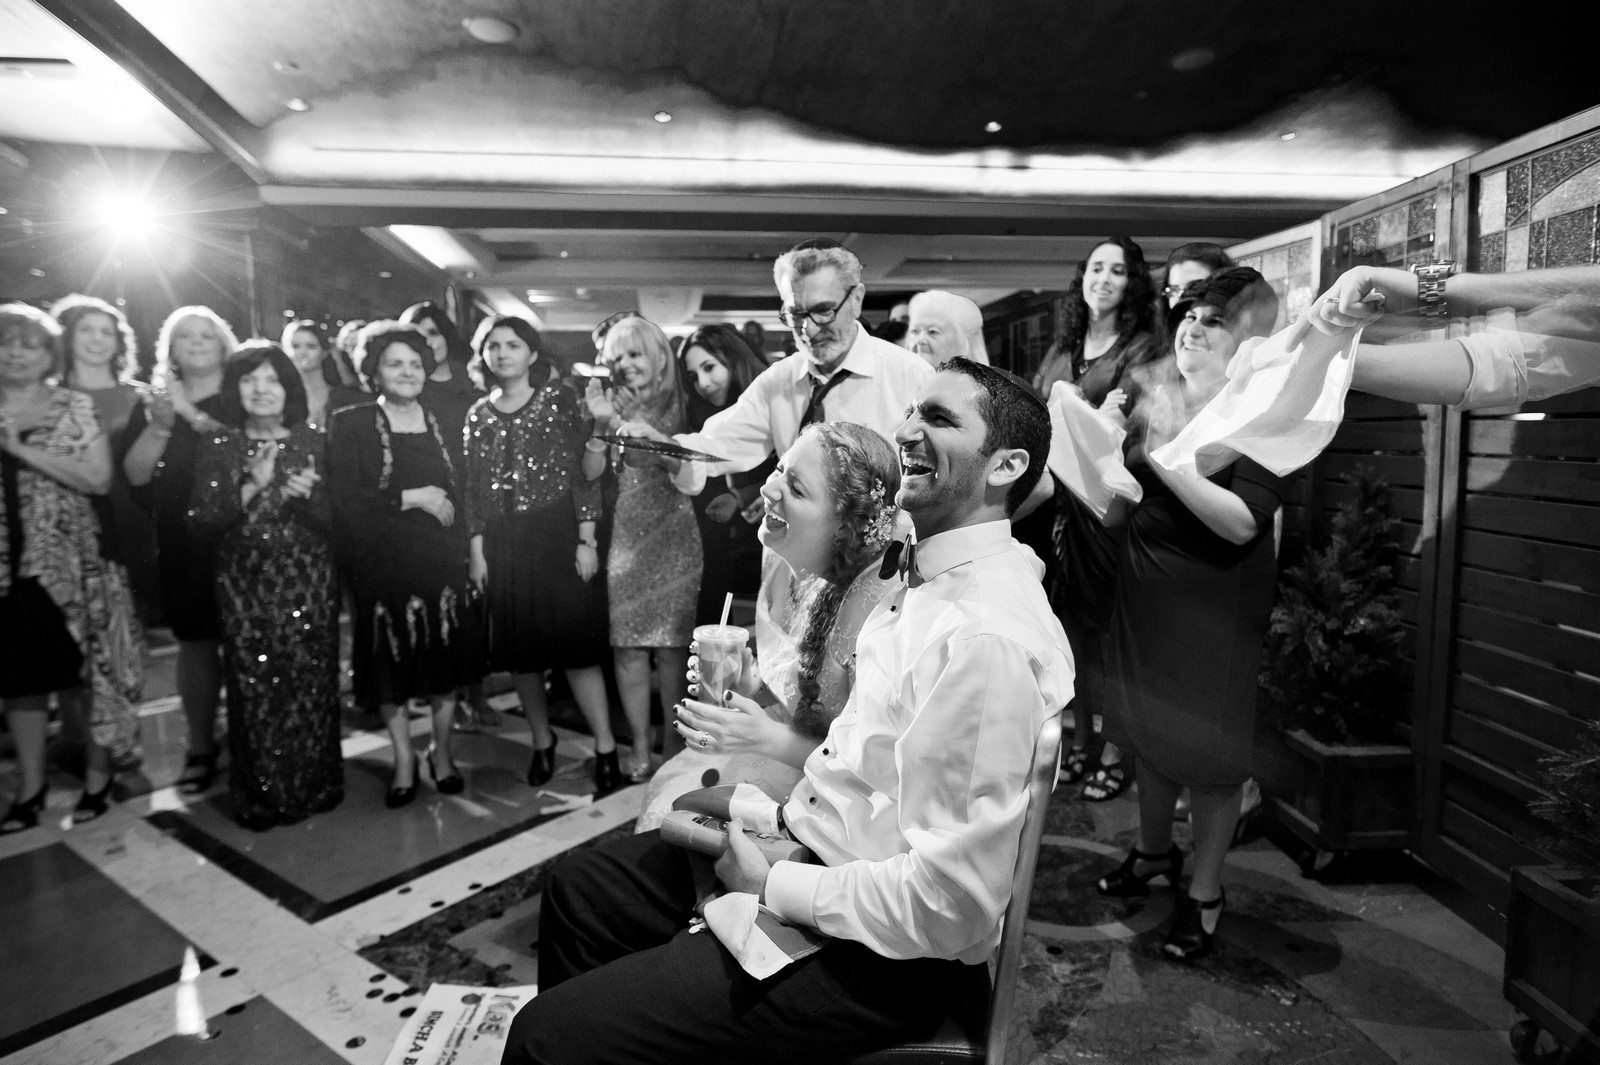 Sam and Yishai's Modern Orthodox Jewish Wedding at Crest Hollow Country Club, Woodbury NY, Photos by Chaim Schvarcz, Bride, Groom, Dancing